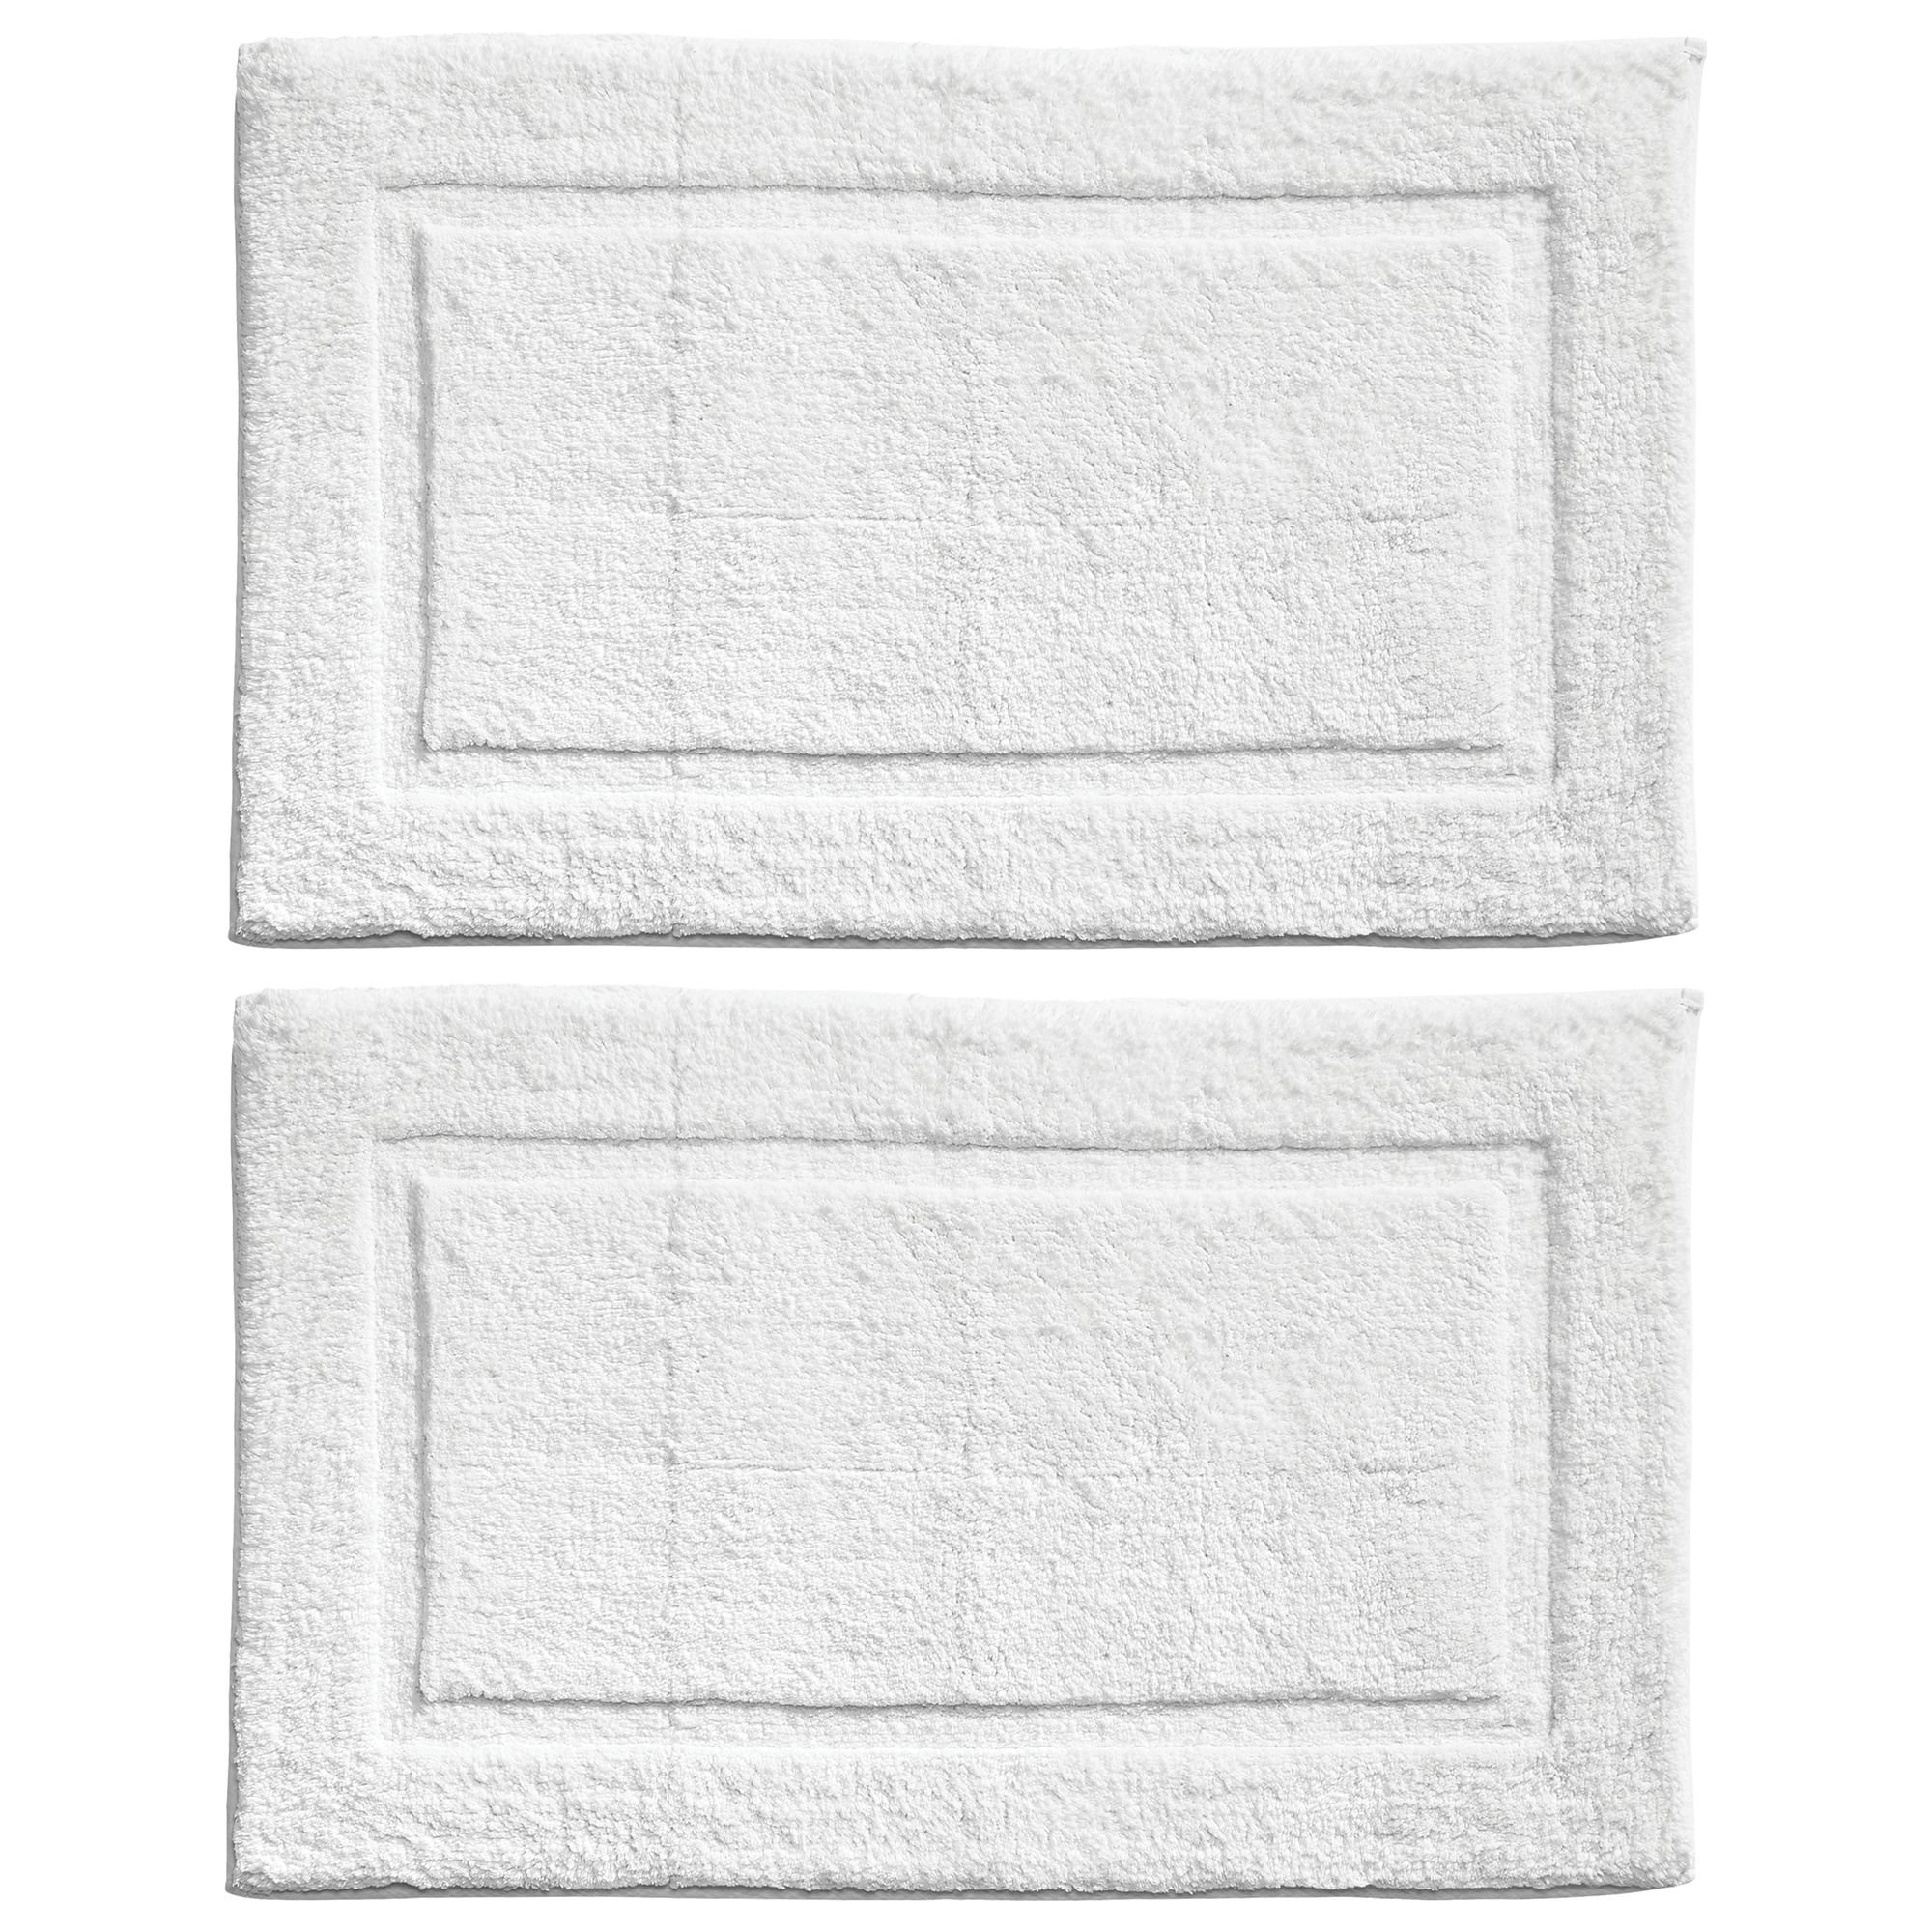 mDesign Soft 100% Cotton Luxury Hotel-Style Rectangular Spa Mat Rug, Plush Water Absorbent, Decorative Border - for Bathroom Vanity, Bathtub/Shower, Machine Washable - Pack of 2, White